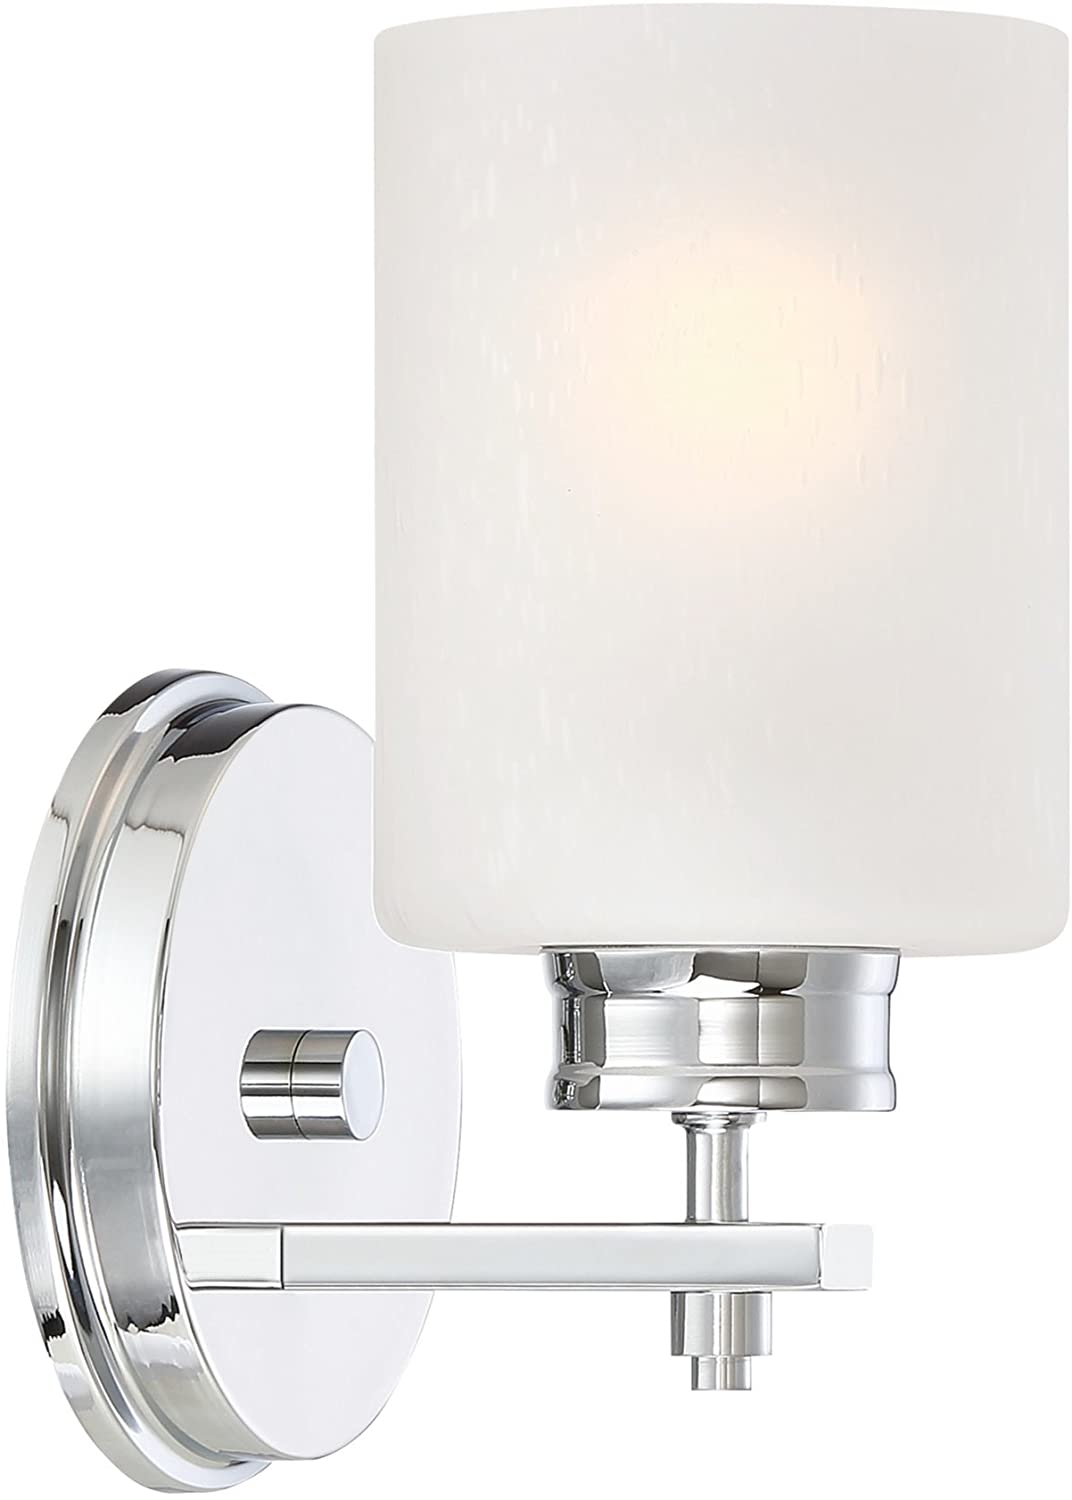 """Kira Home Phoebe 8"""" Modern 1-Light Wall Sconce/Vanity Light + Frosted Seeded Glass Shade, Chrome Finish"""